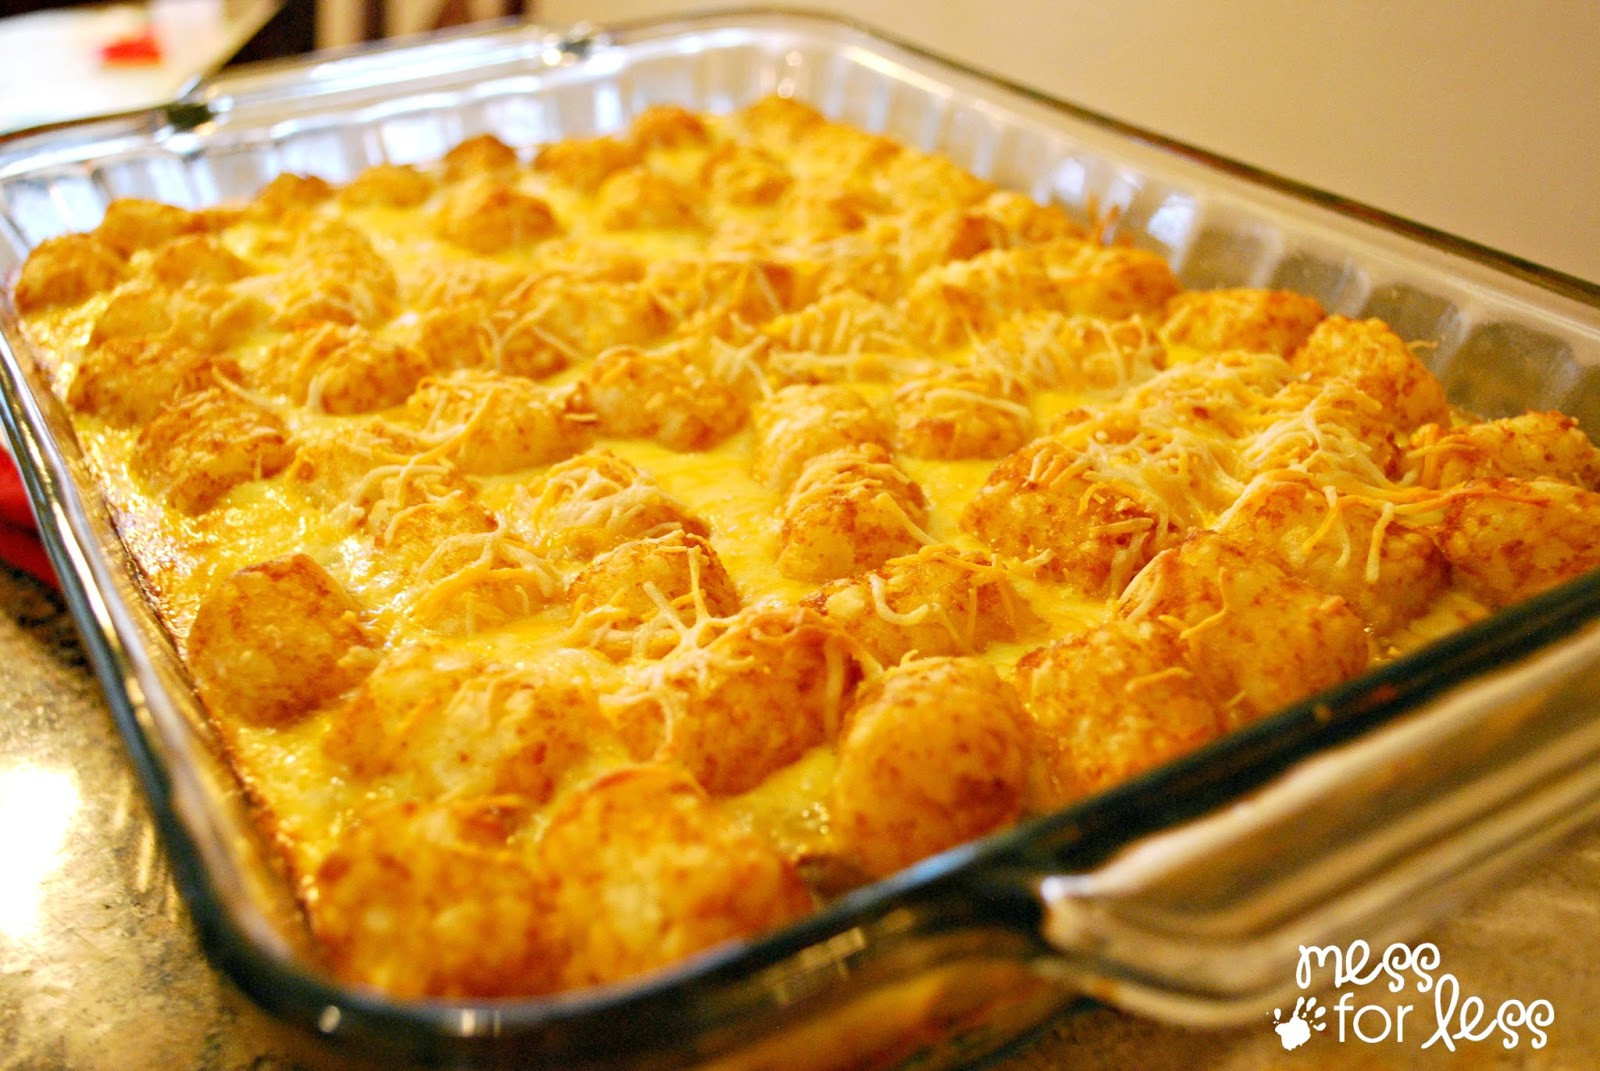 Breakfast Casserole With Tater Tots  Tater Tot Casserole Food Fun Friday Mess for Less